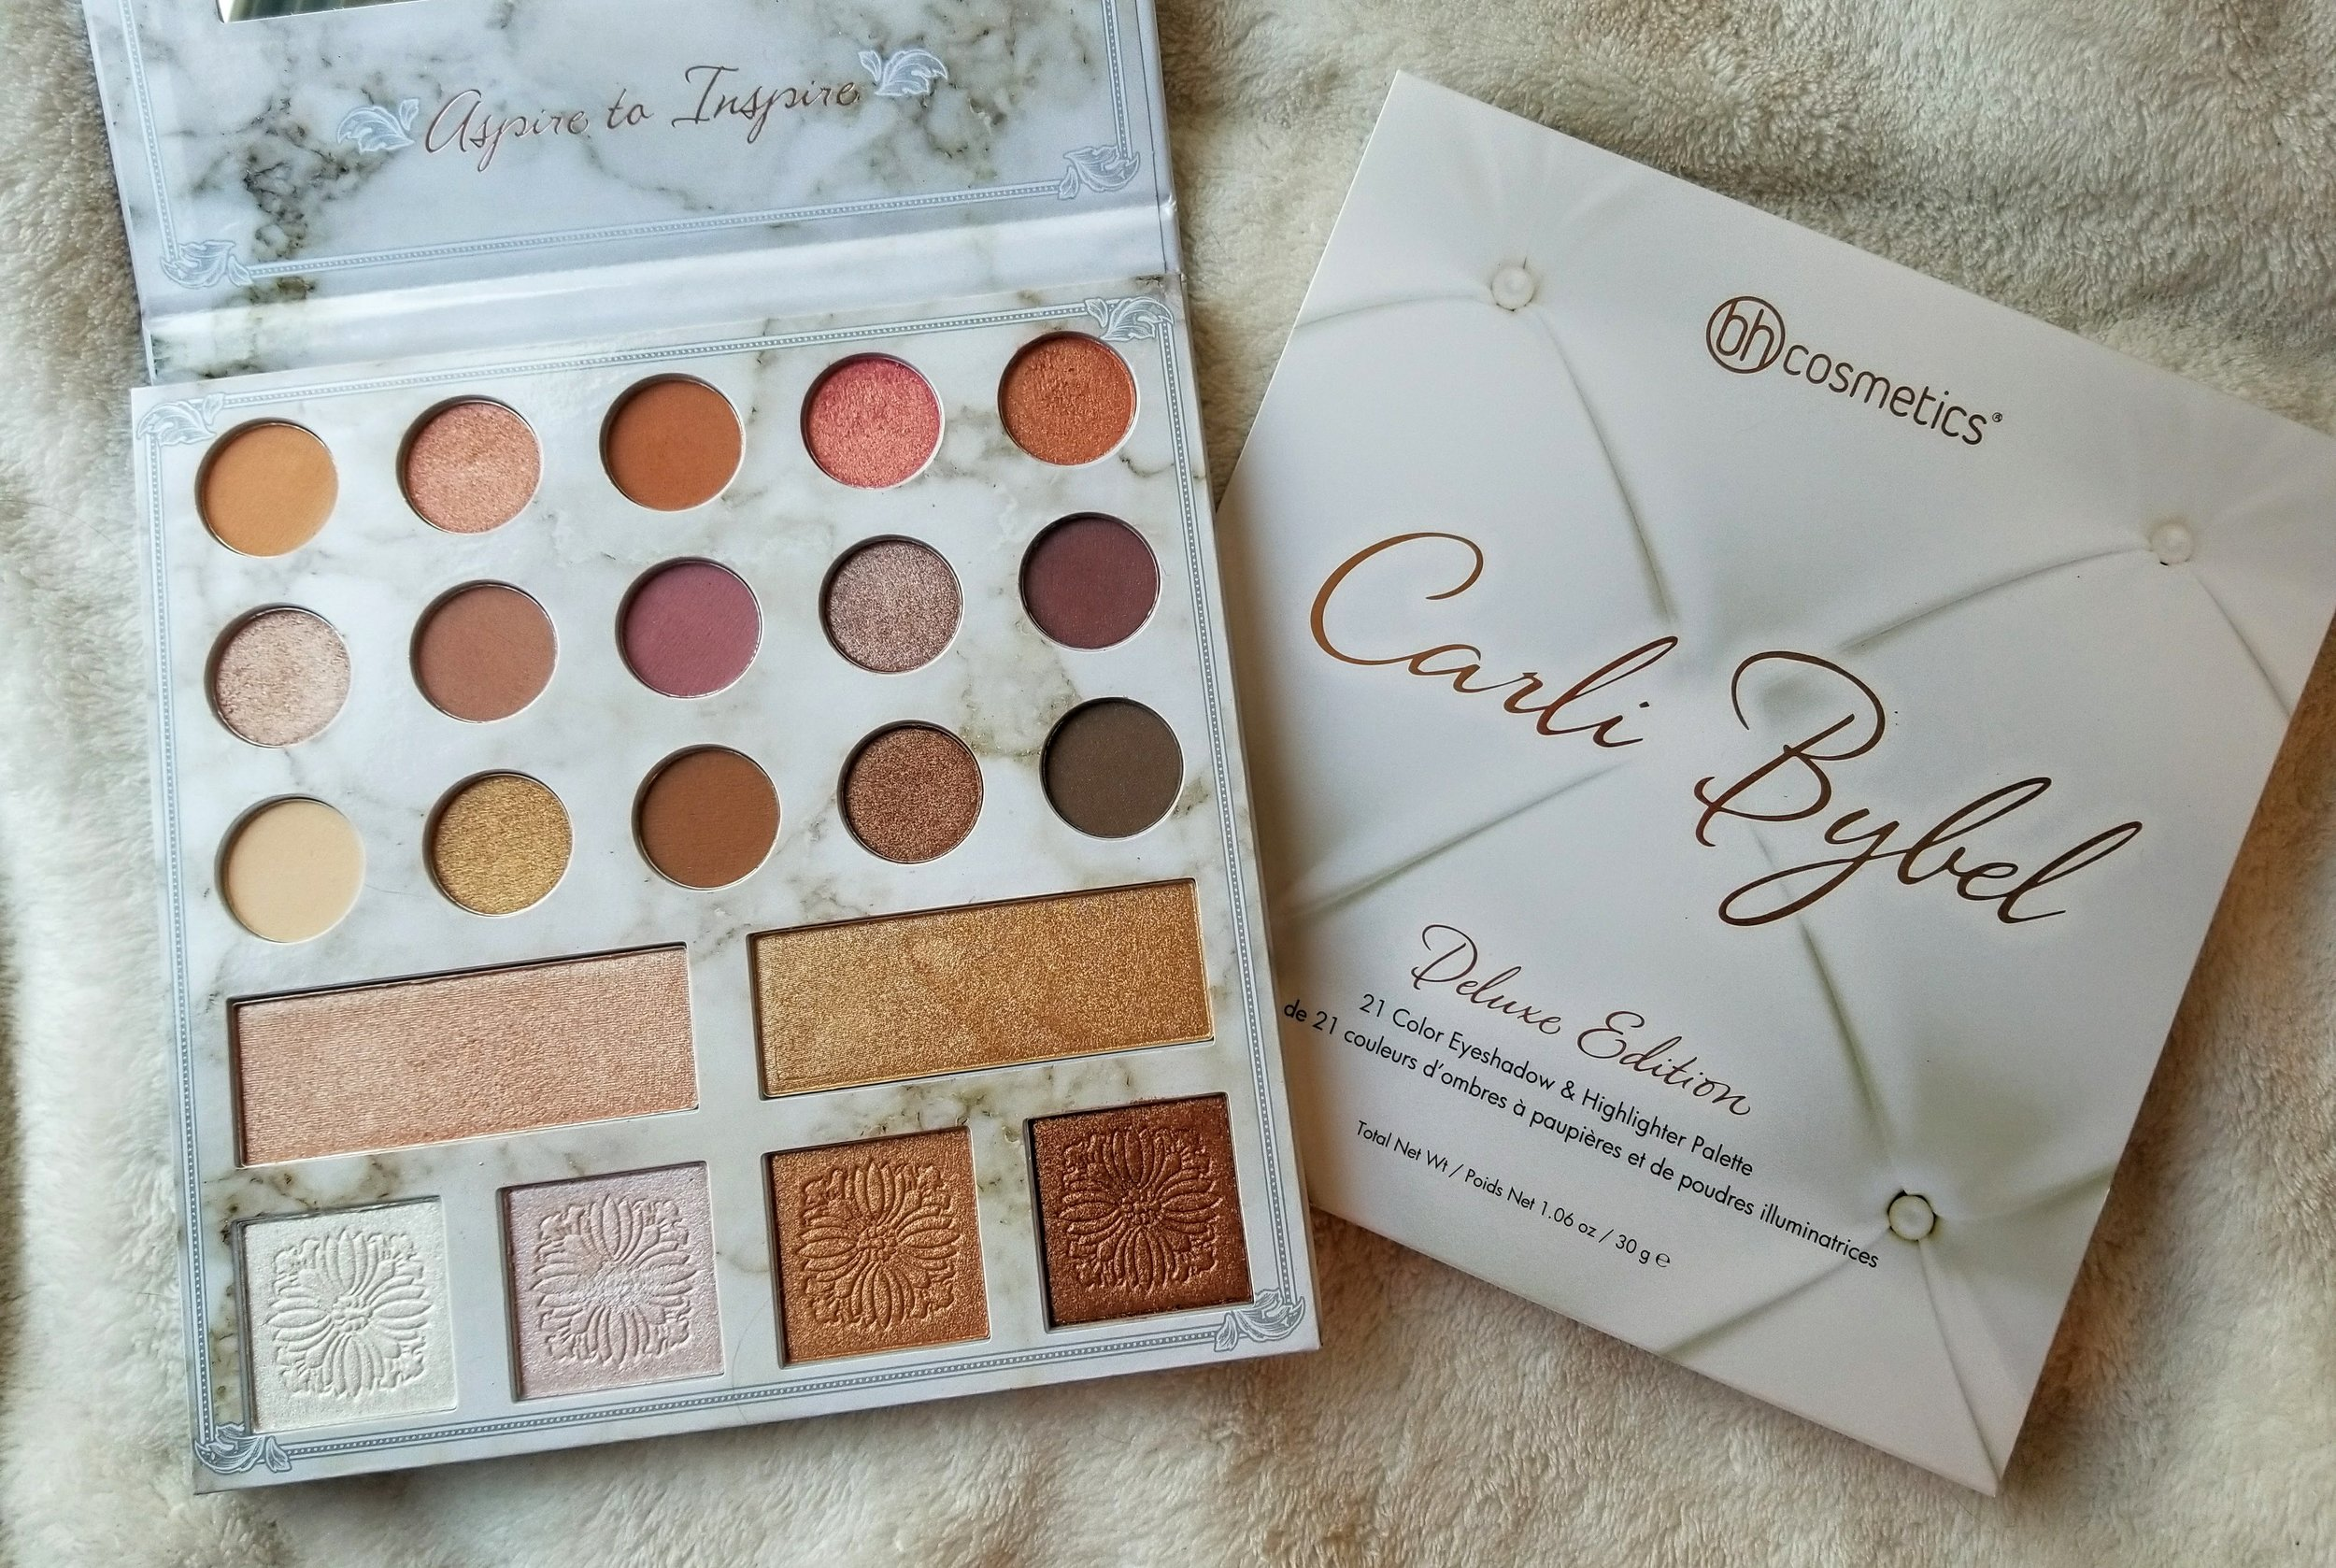 A photo of Carli Bybel deluxe edition eyeshadow and highlighter palette.